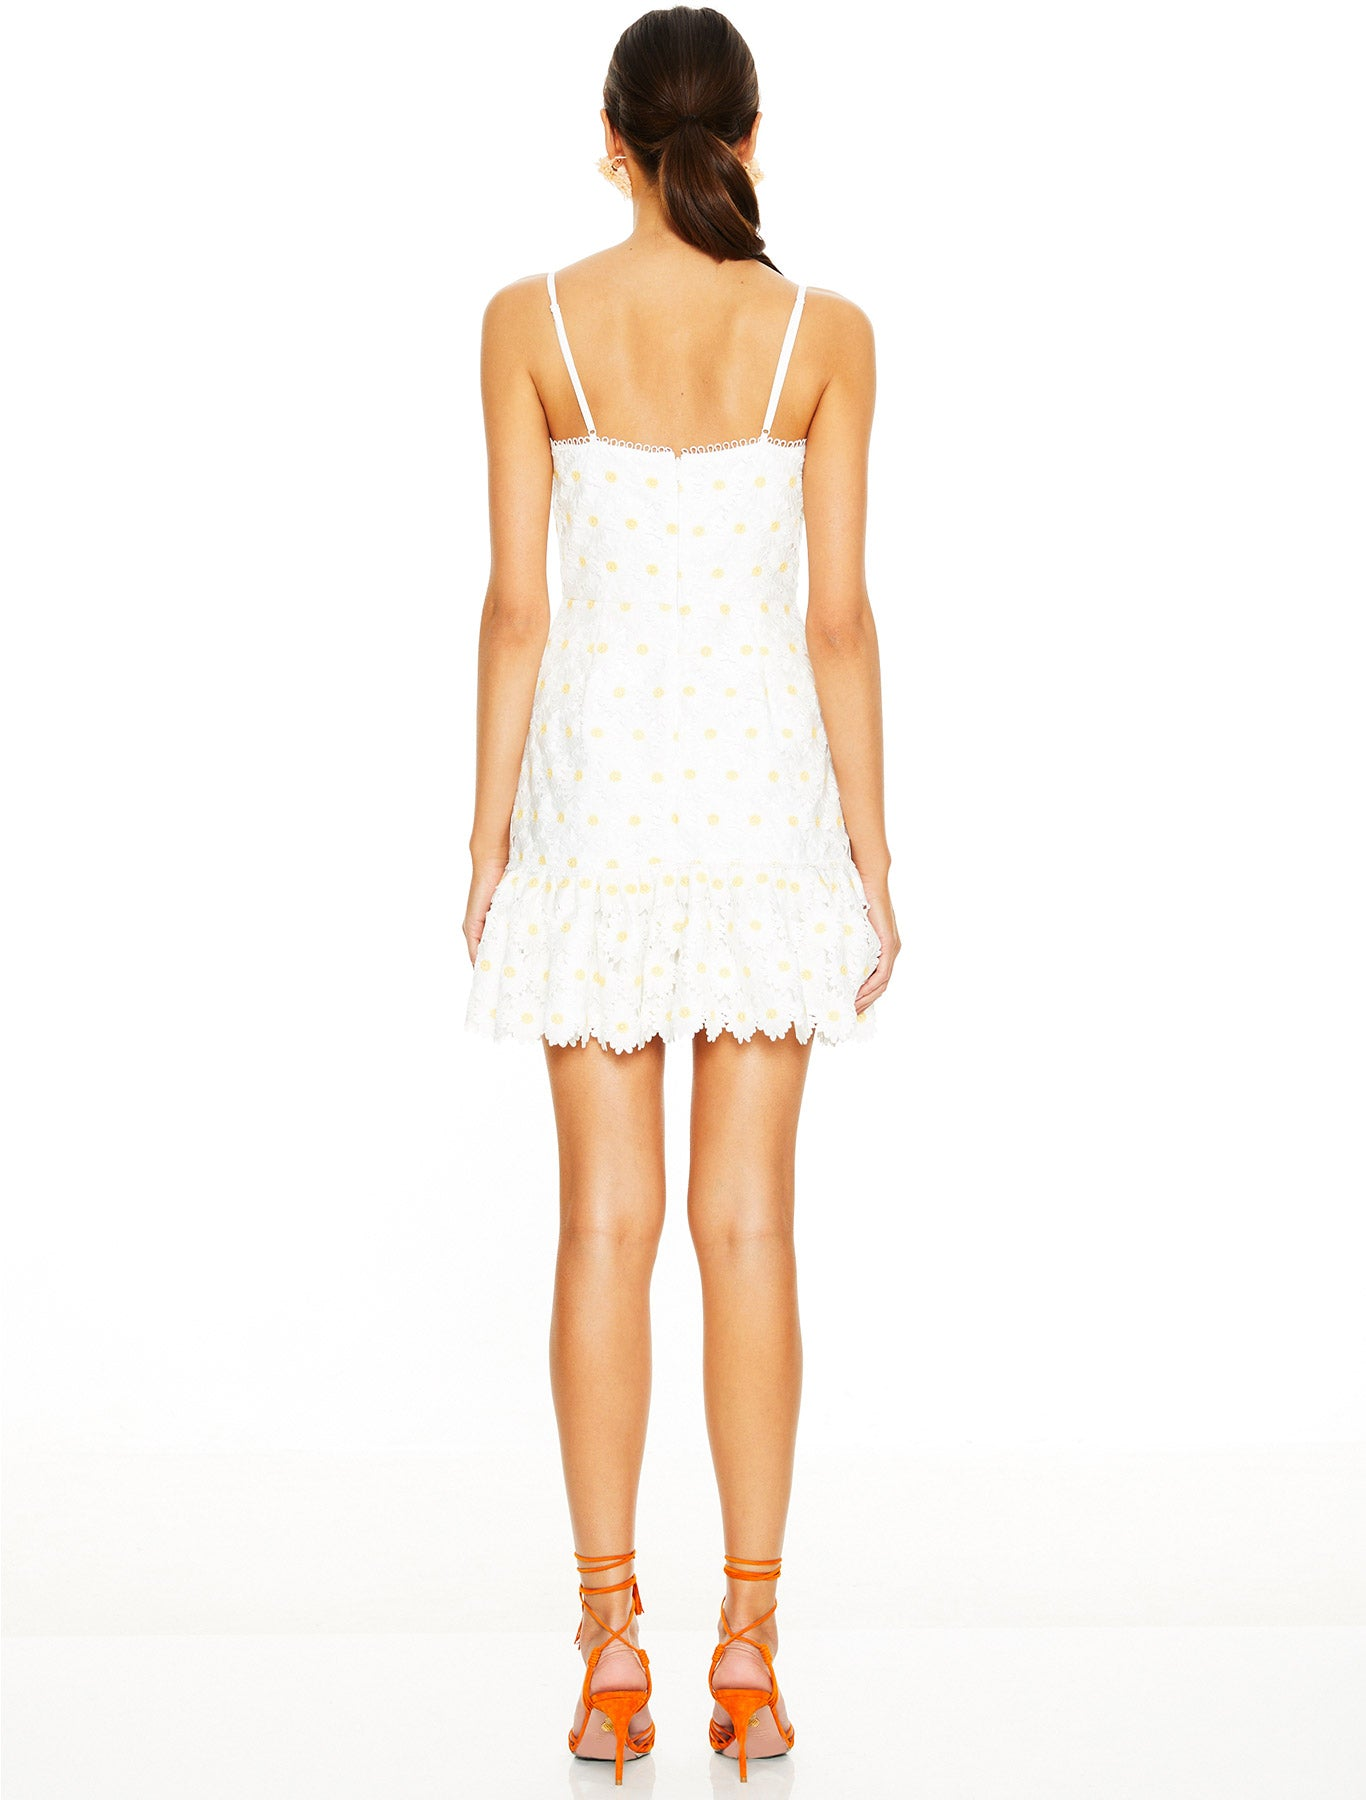 SPRITZER MINI DRESS